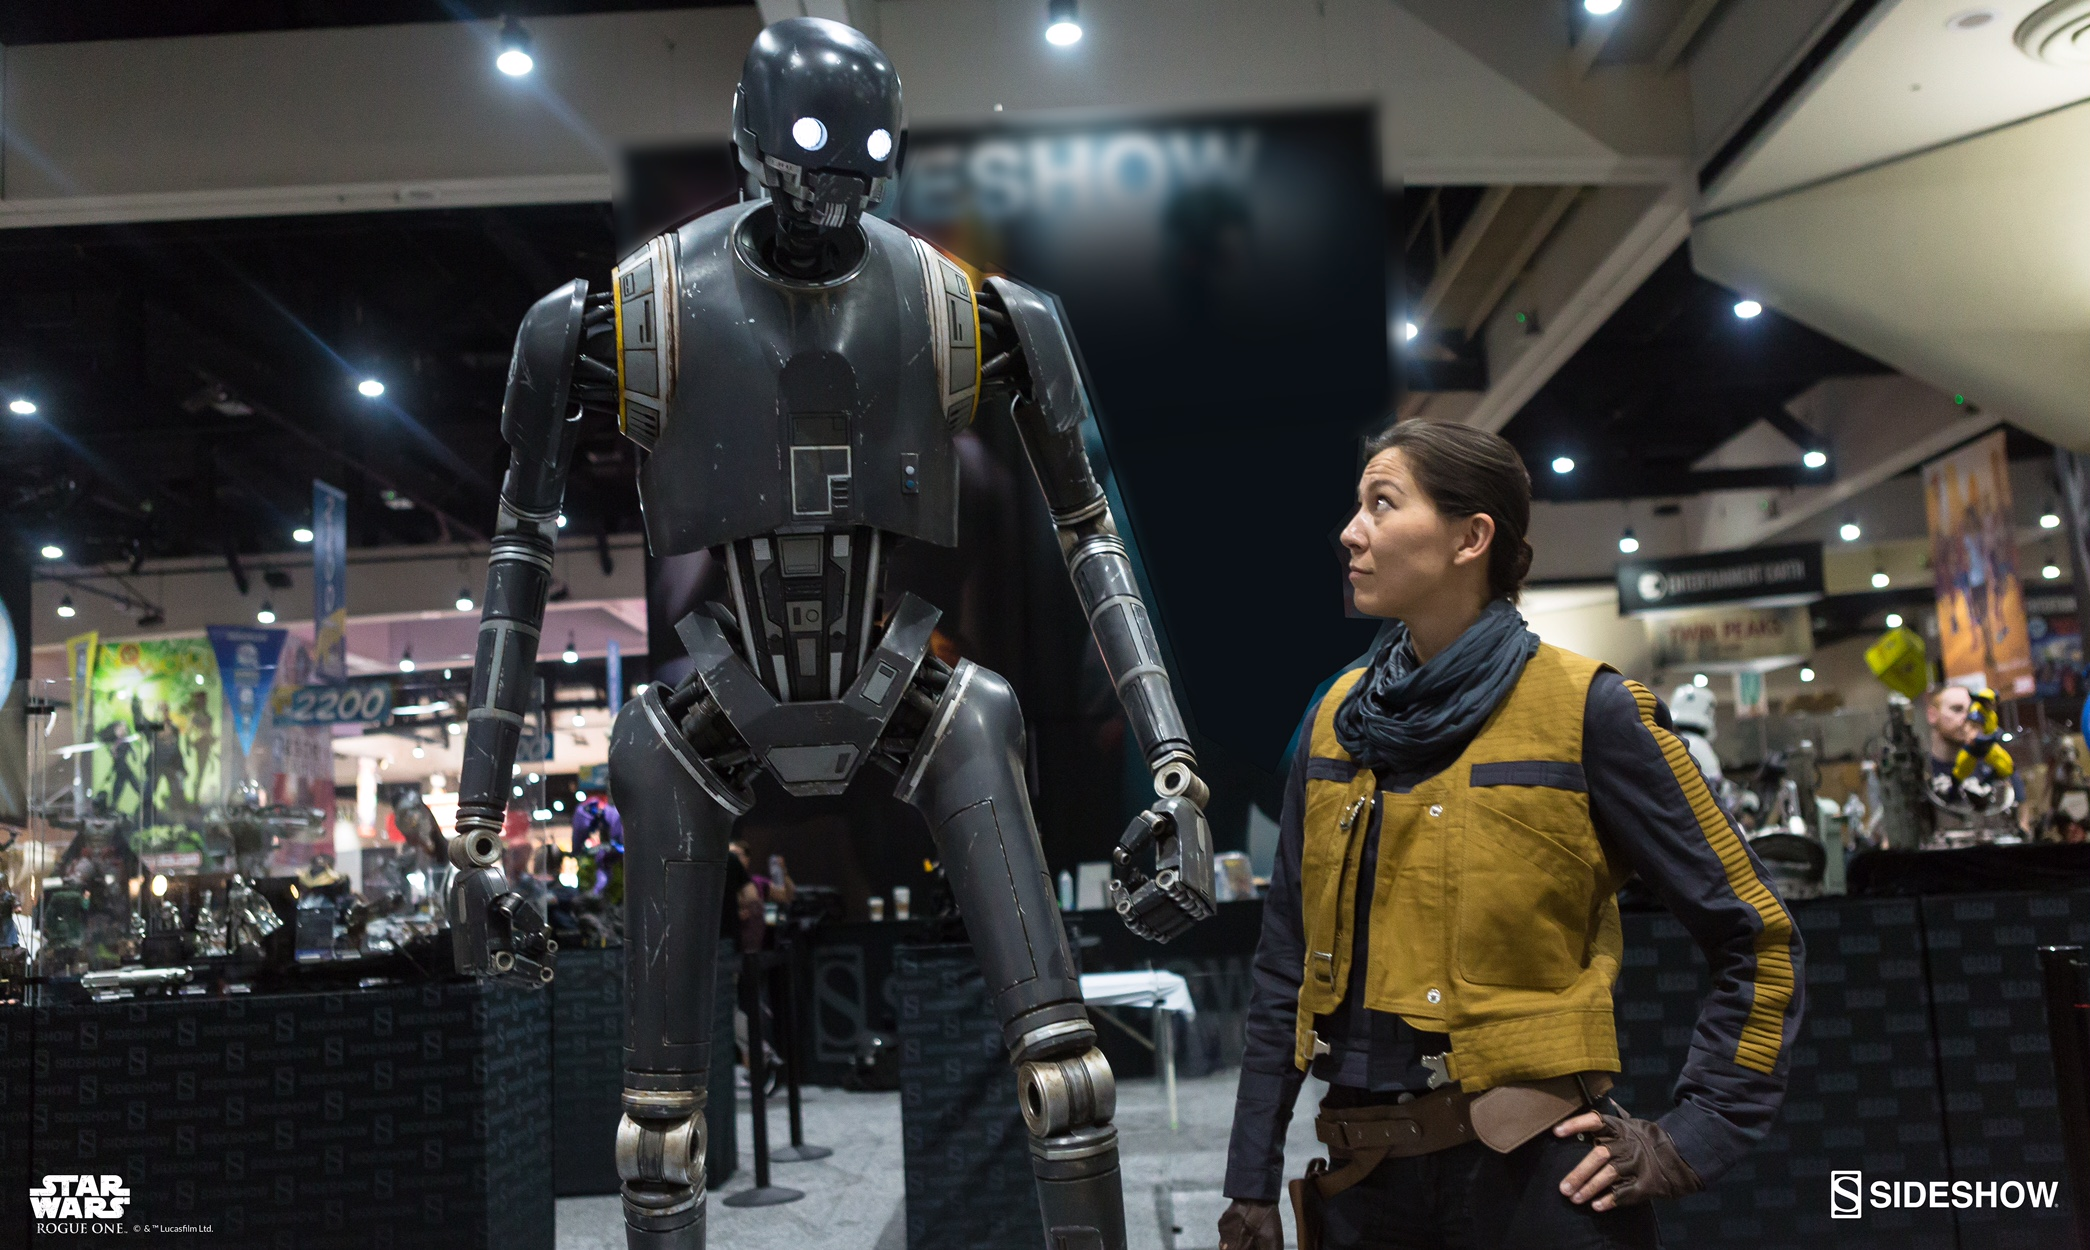 osw.zone Rogue One-Liners: The Best 7 K-2SO Quotes